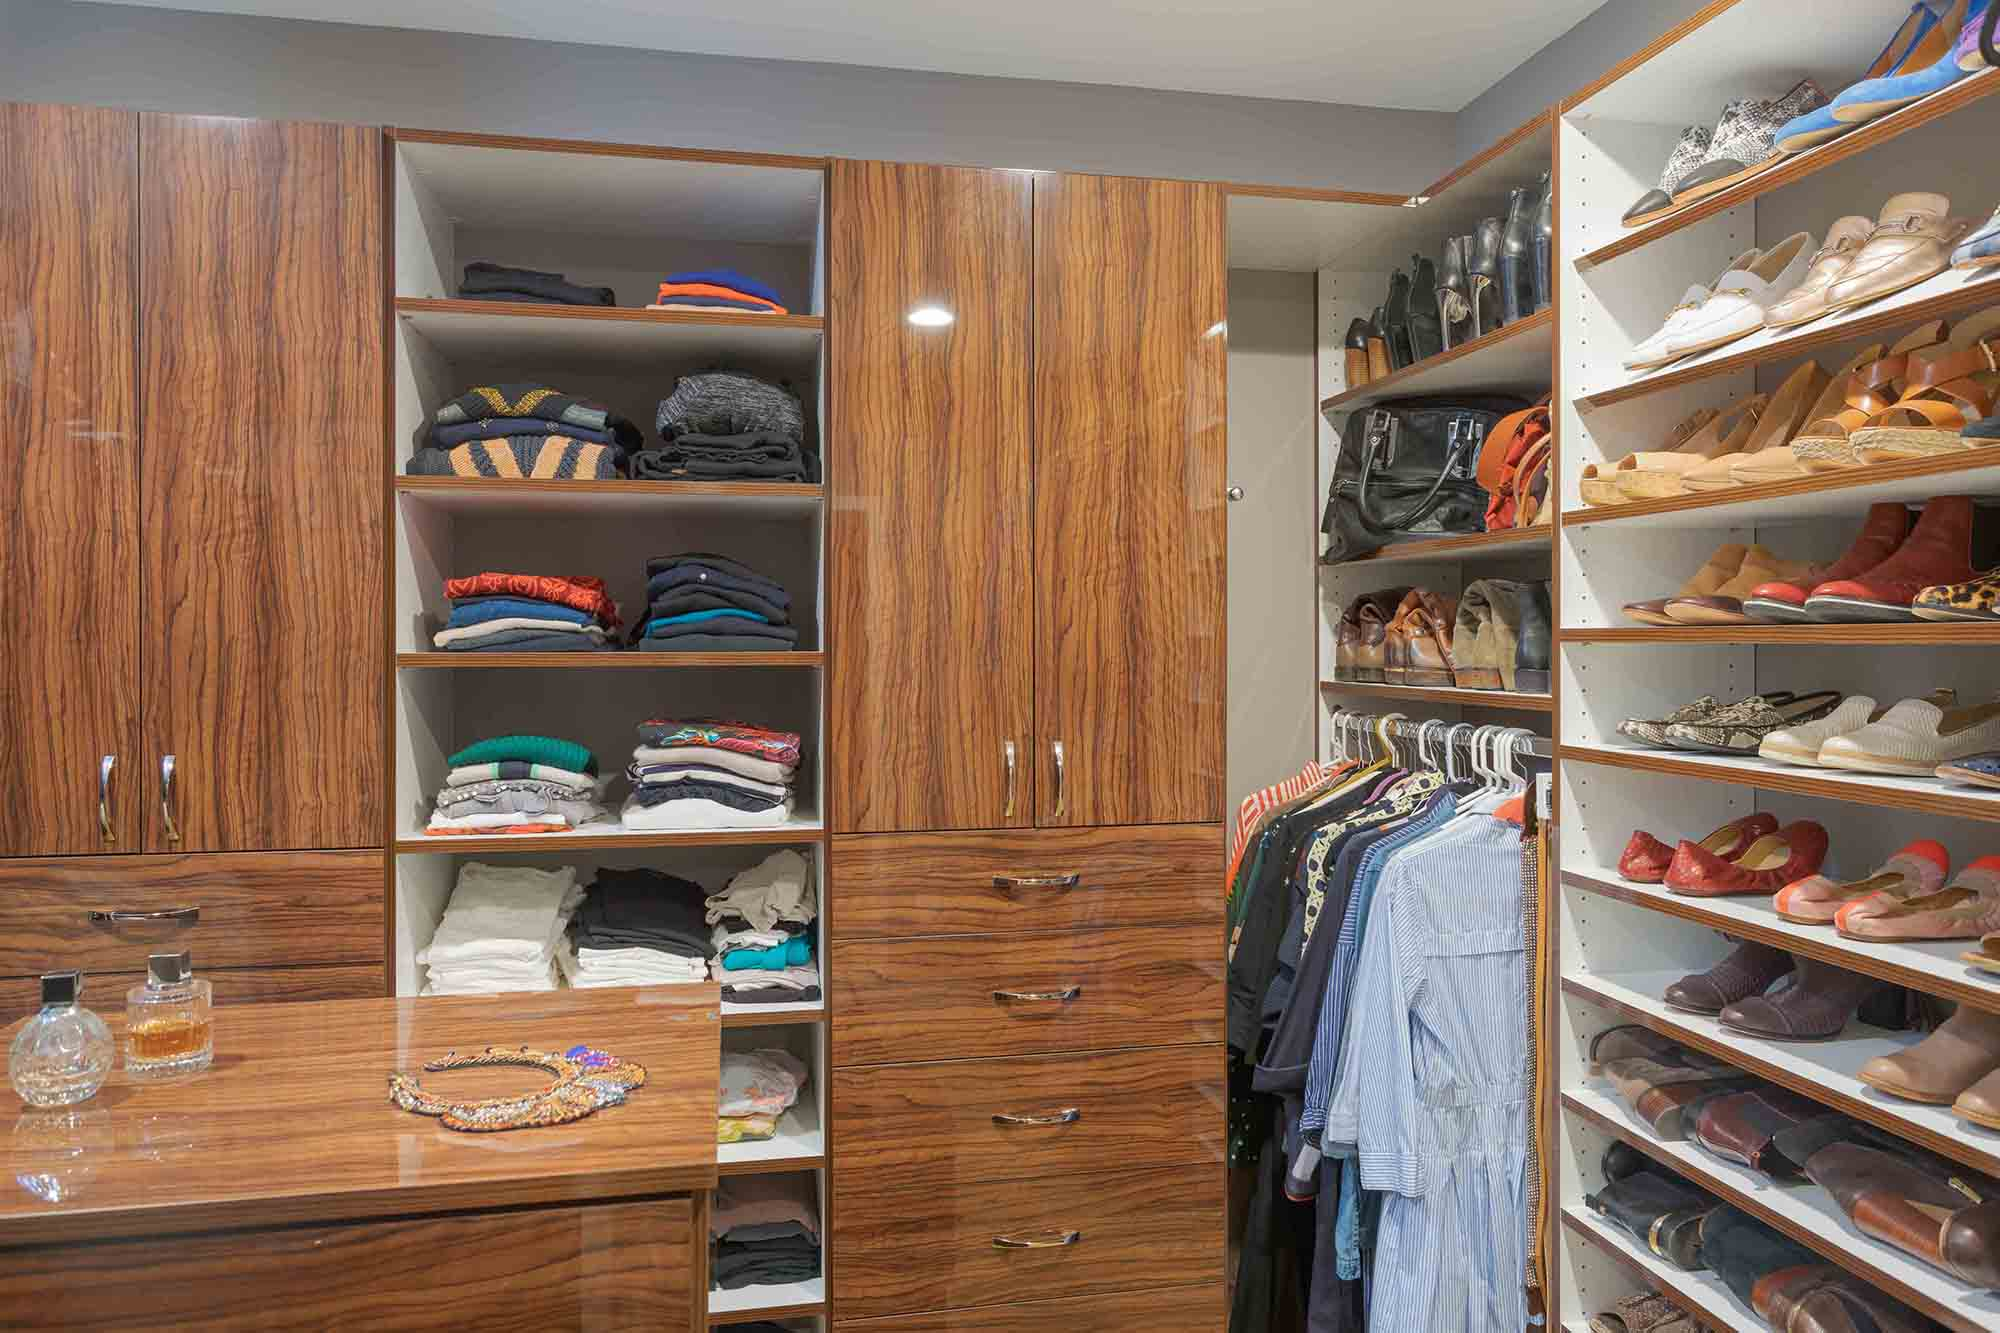 Men's walk in closet organized with shoe shelves